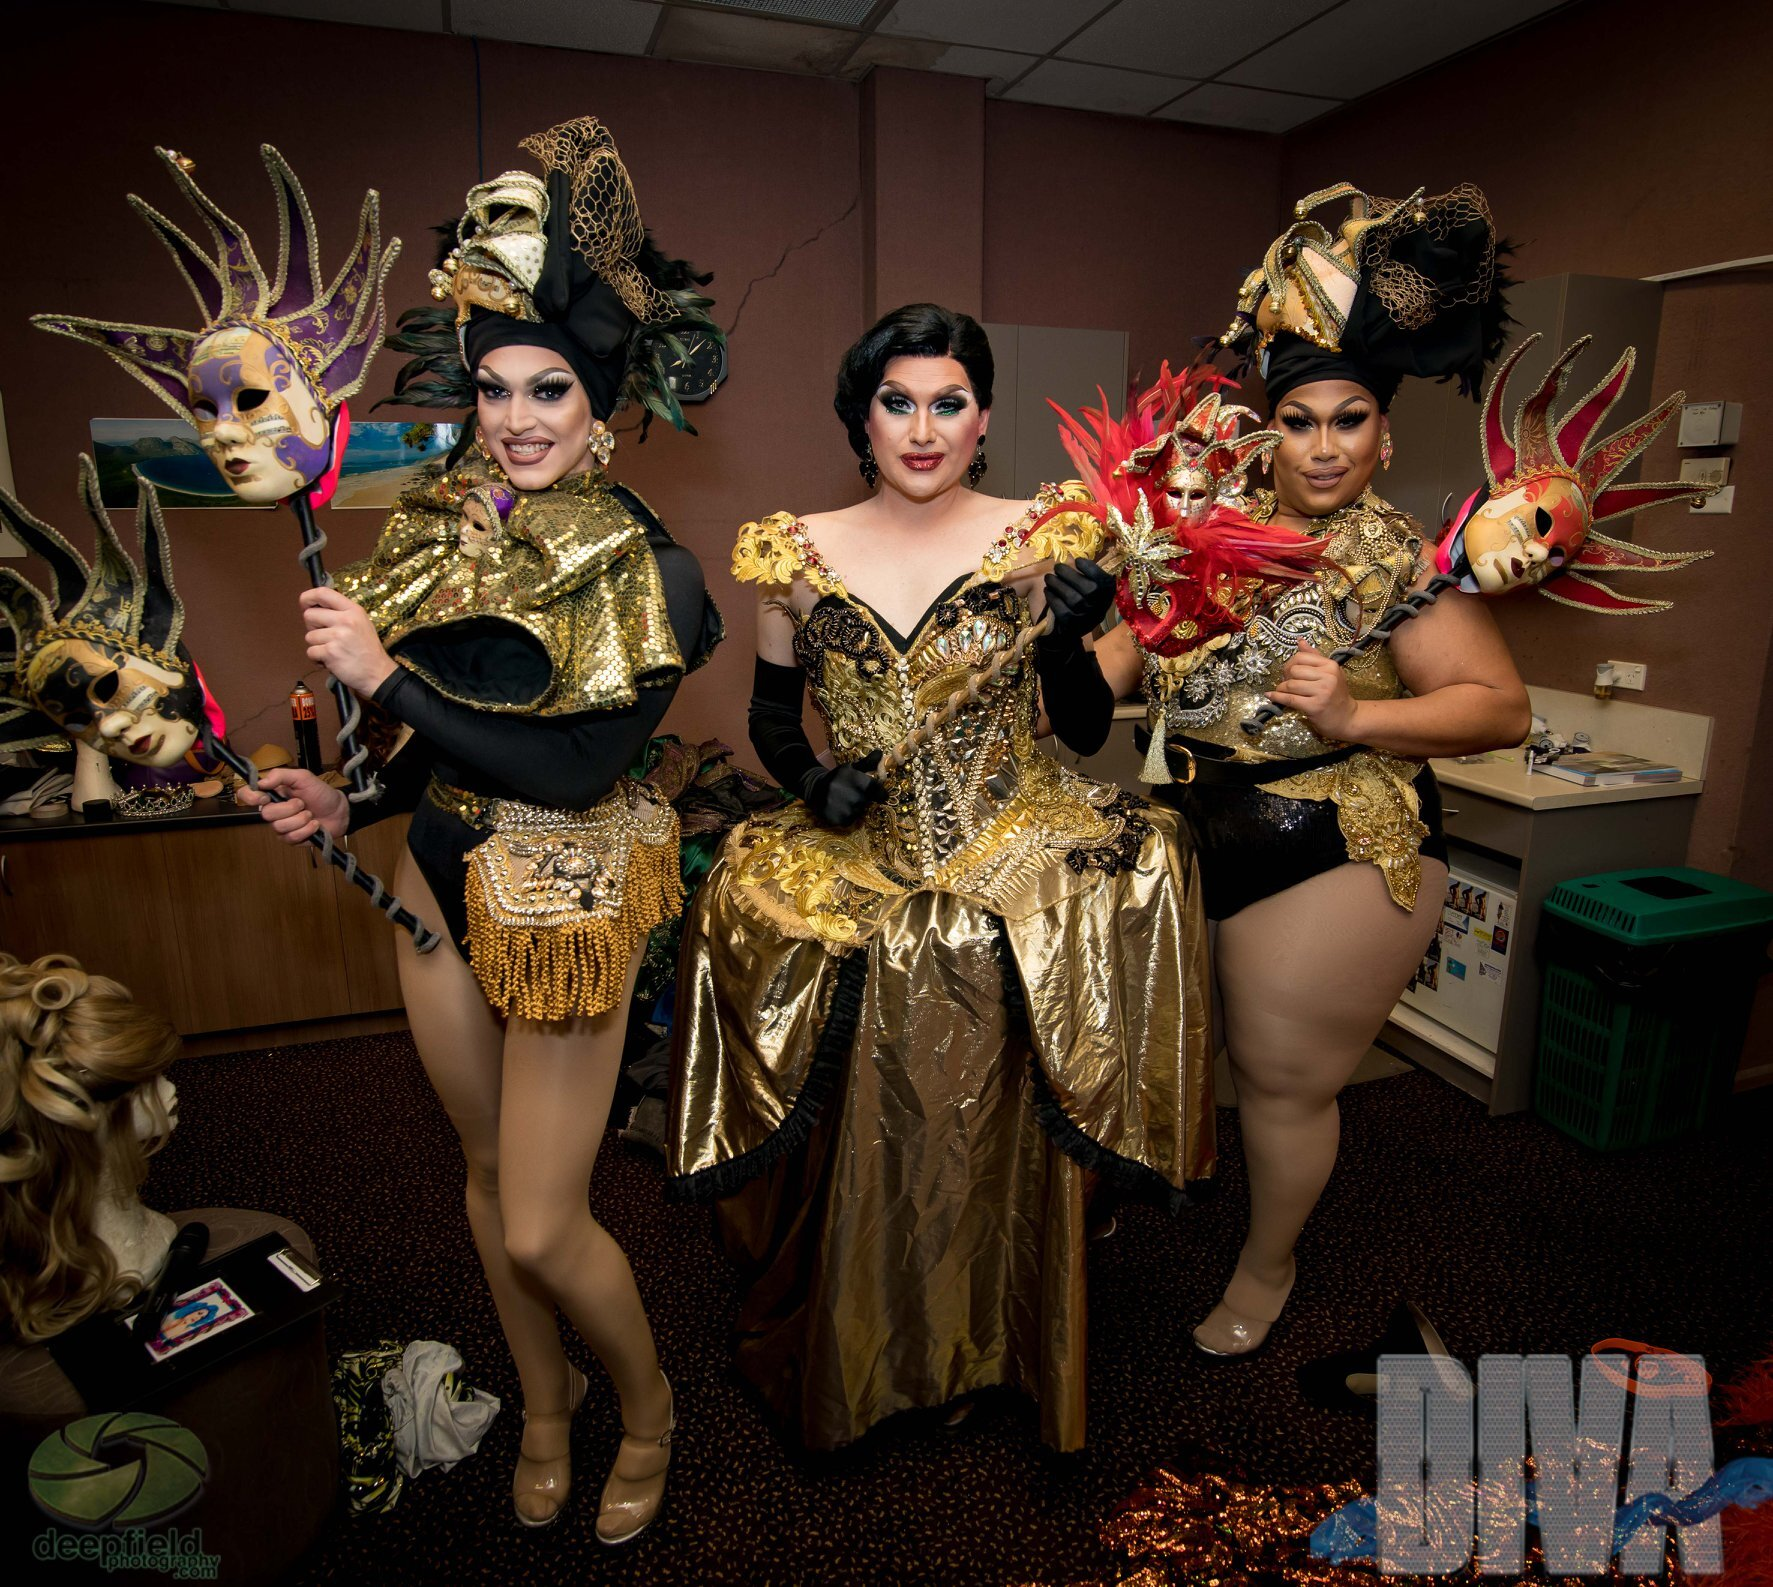 masqueerade-show-of-the-year-sia-tequila-charisma-belle-coco-jumbo-diva-awards-sydney-drag-queen-royalty-best-hire-drag-race-australia.jpg